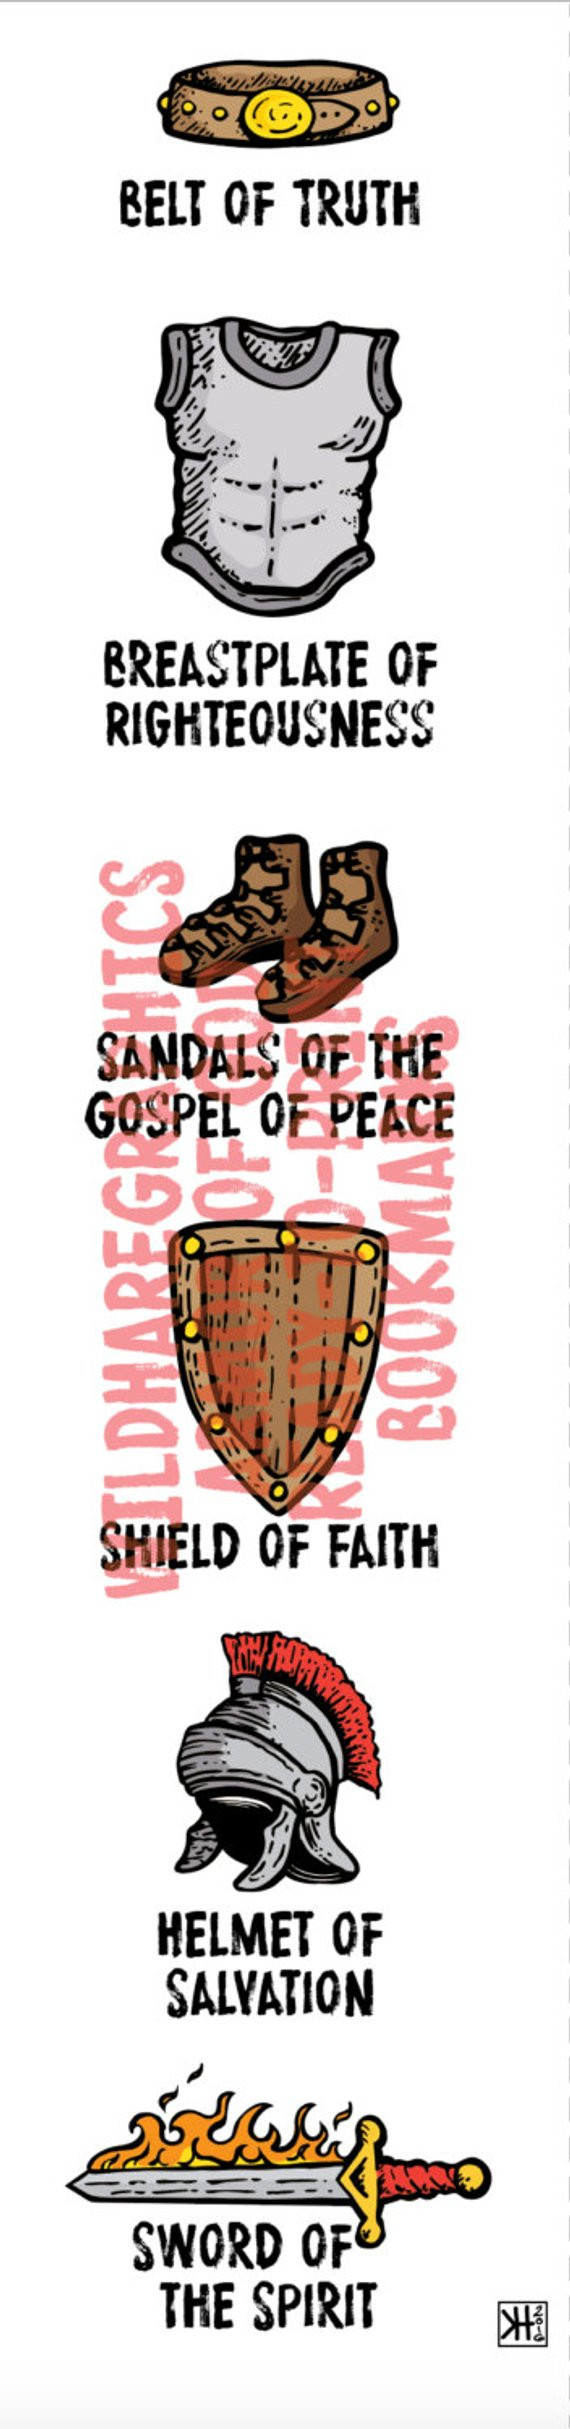 cowboy boot vases wholesale of armor of god ready to print bookmarks etsy for image 0 a—…